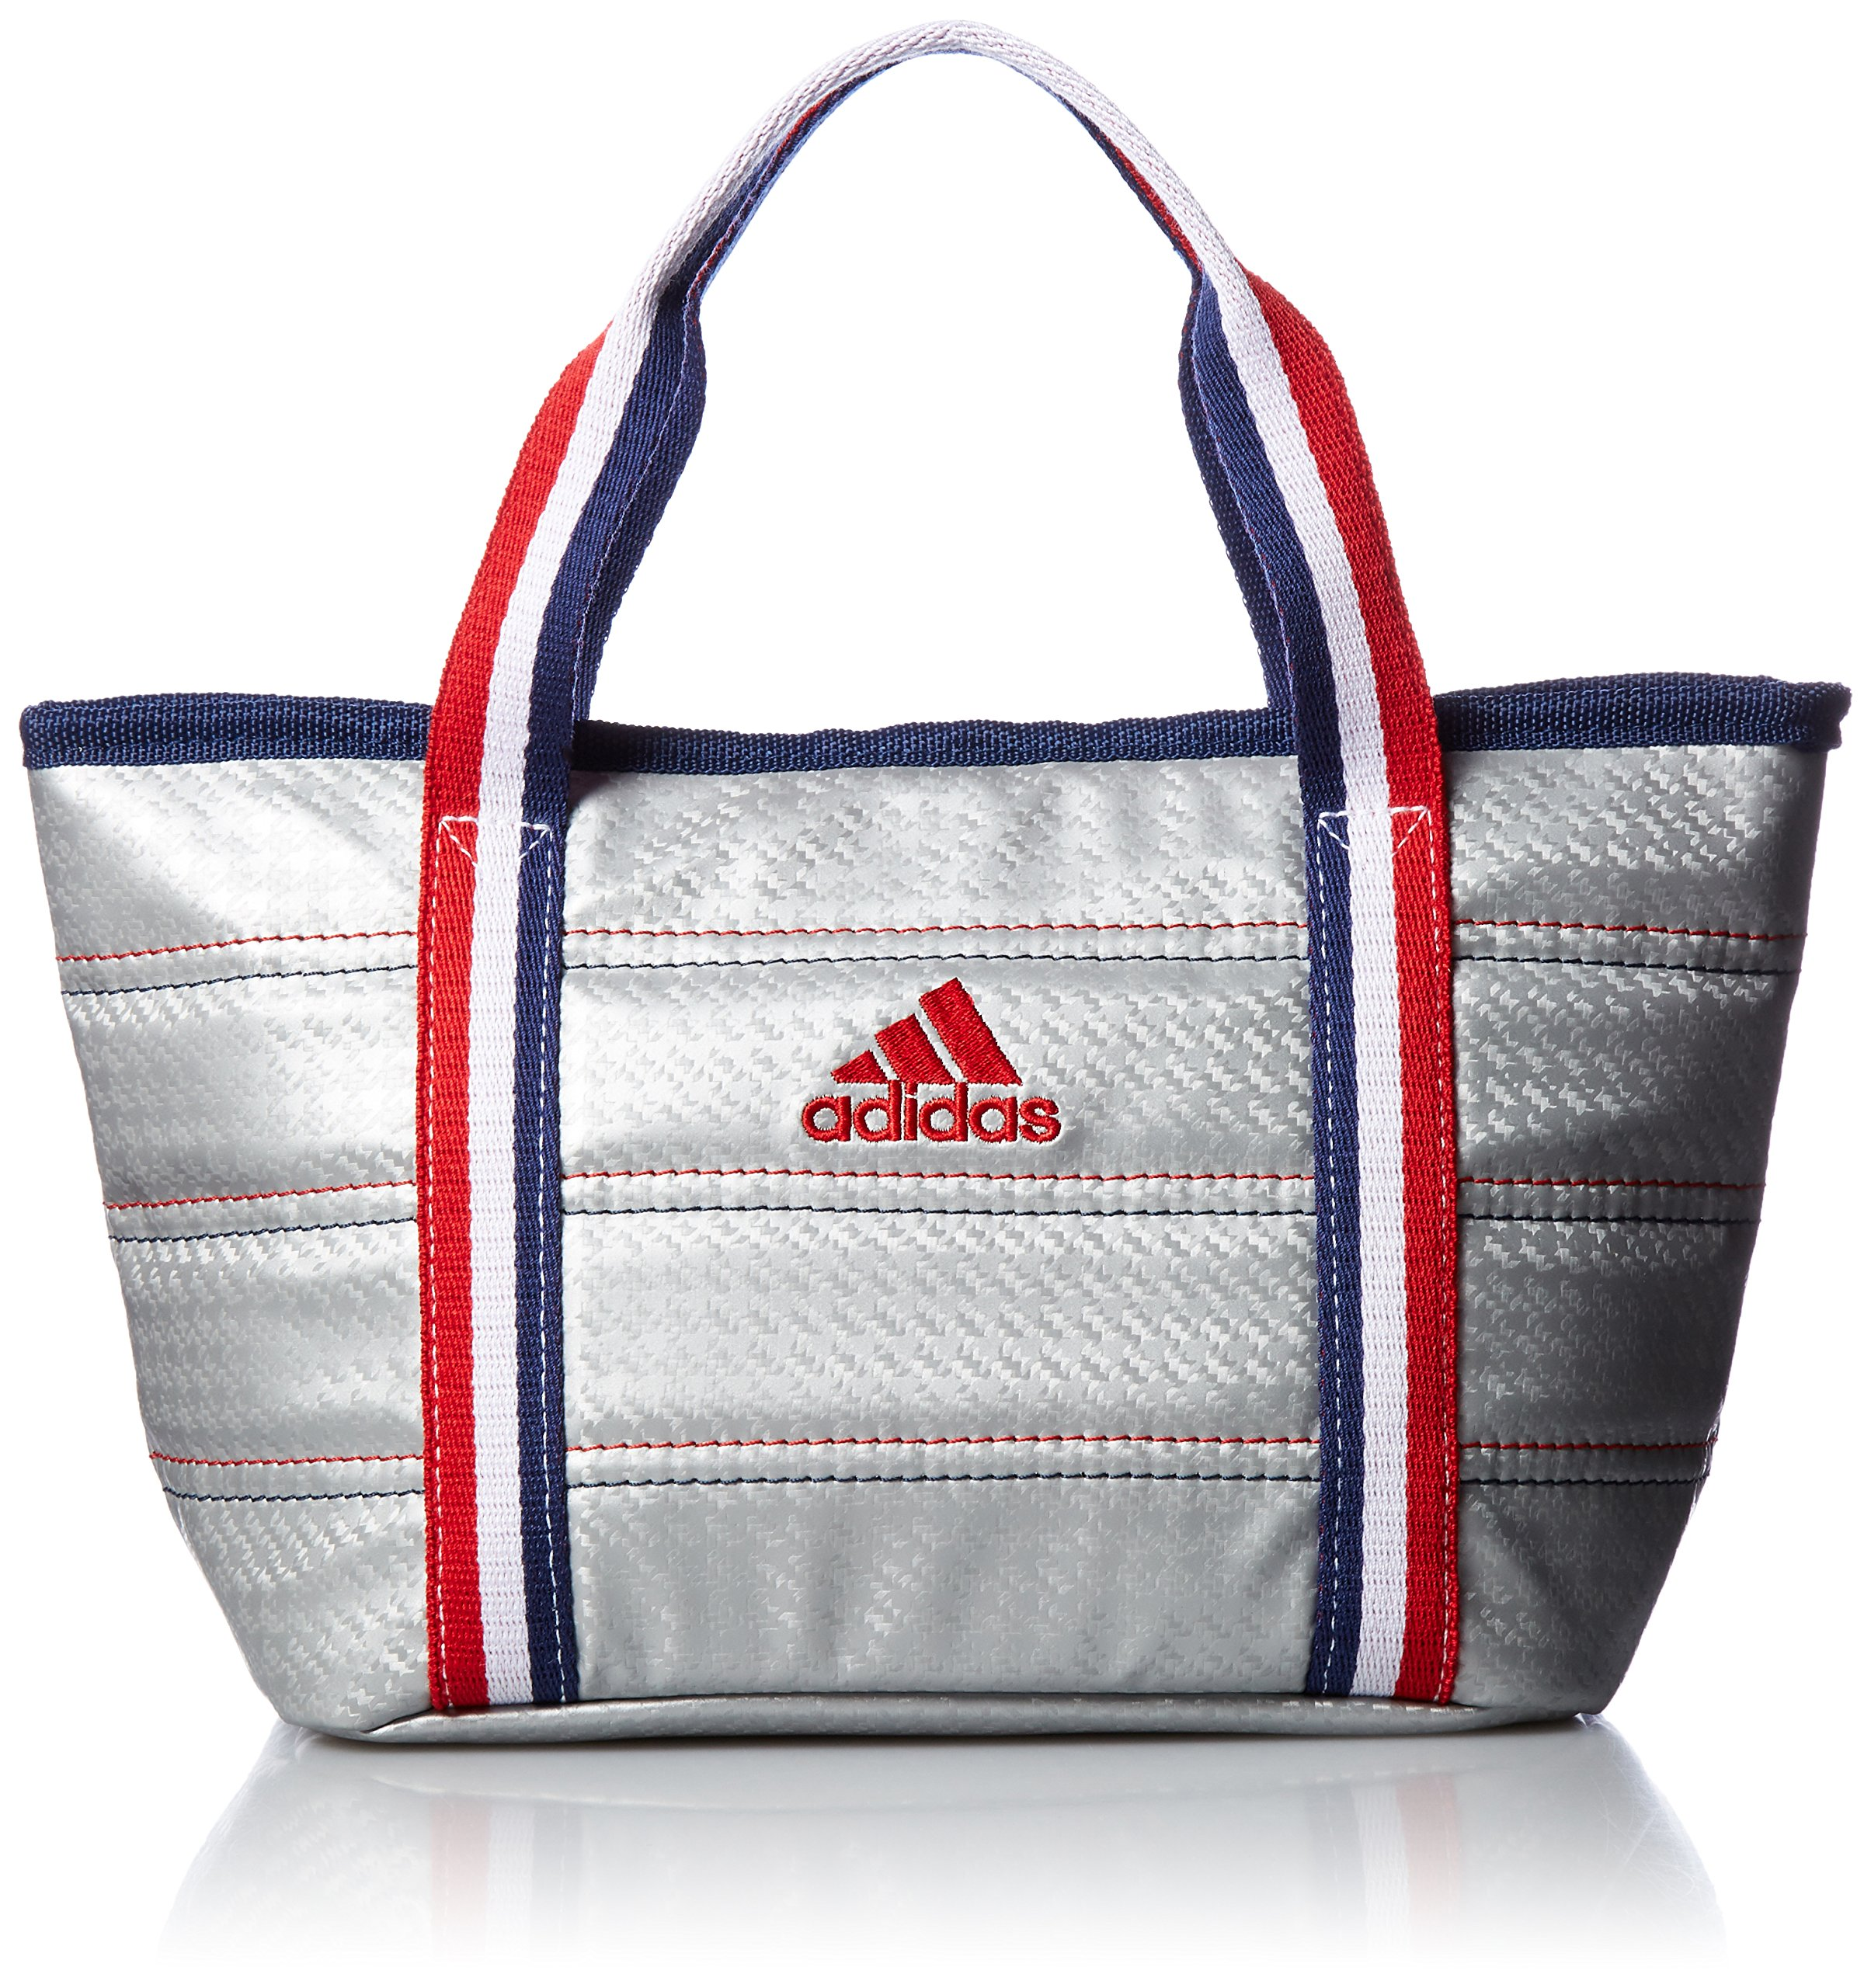 [Adidas Golf] Round Tote Bag L23 × W18 × H13 cm AWT 28 A 42076 Silver by adidas (Image #1)